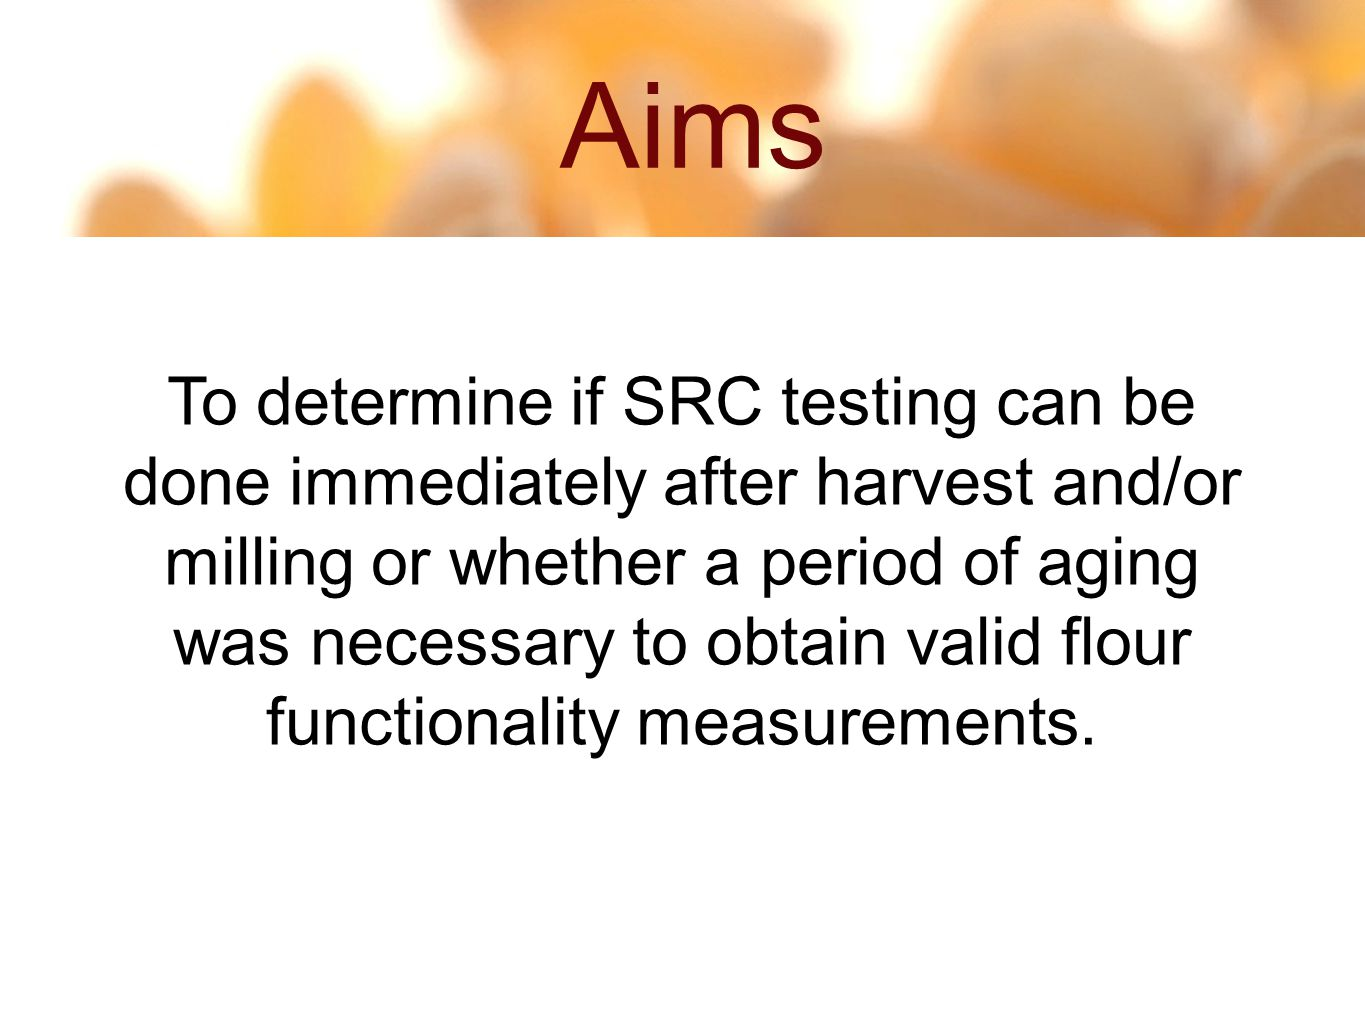 Aims 4 22 To determine if SRC testing can be done immediately after harvest and/or milling or whether a period of aging was necessary to obtain valid flour functionality measurements.